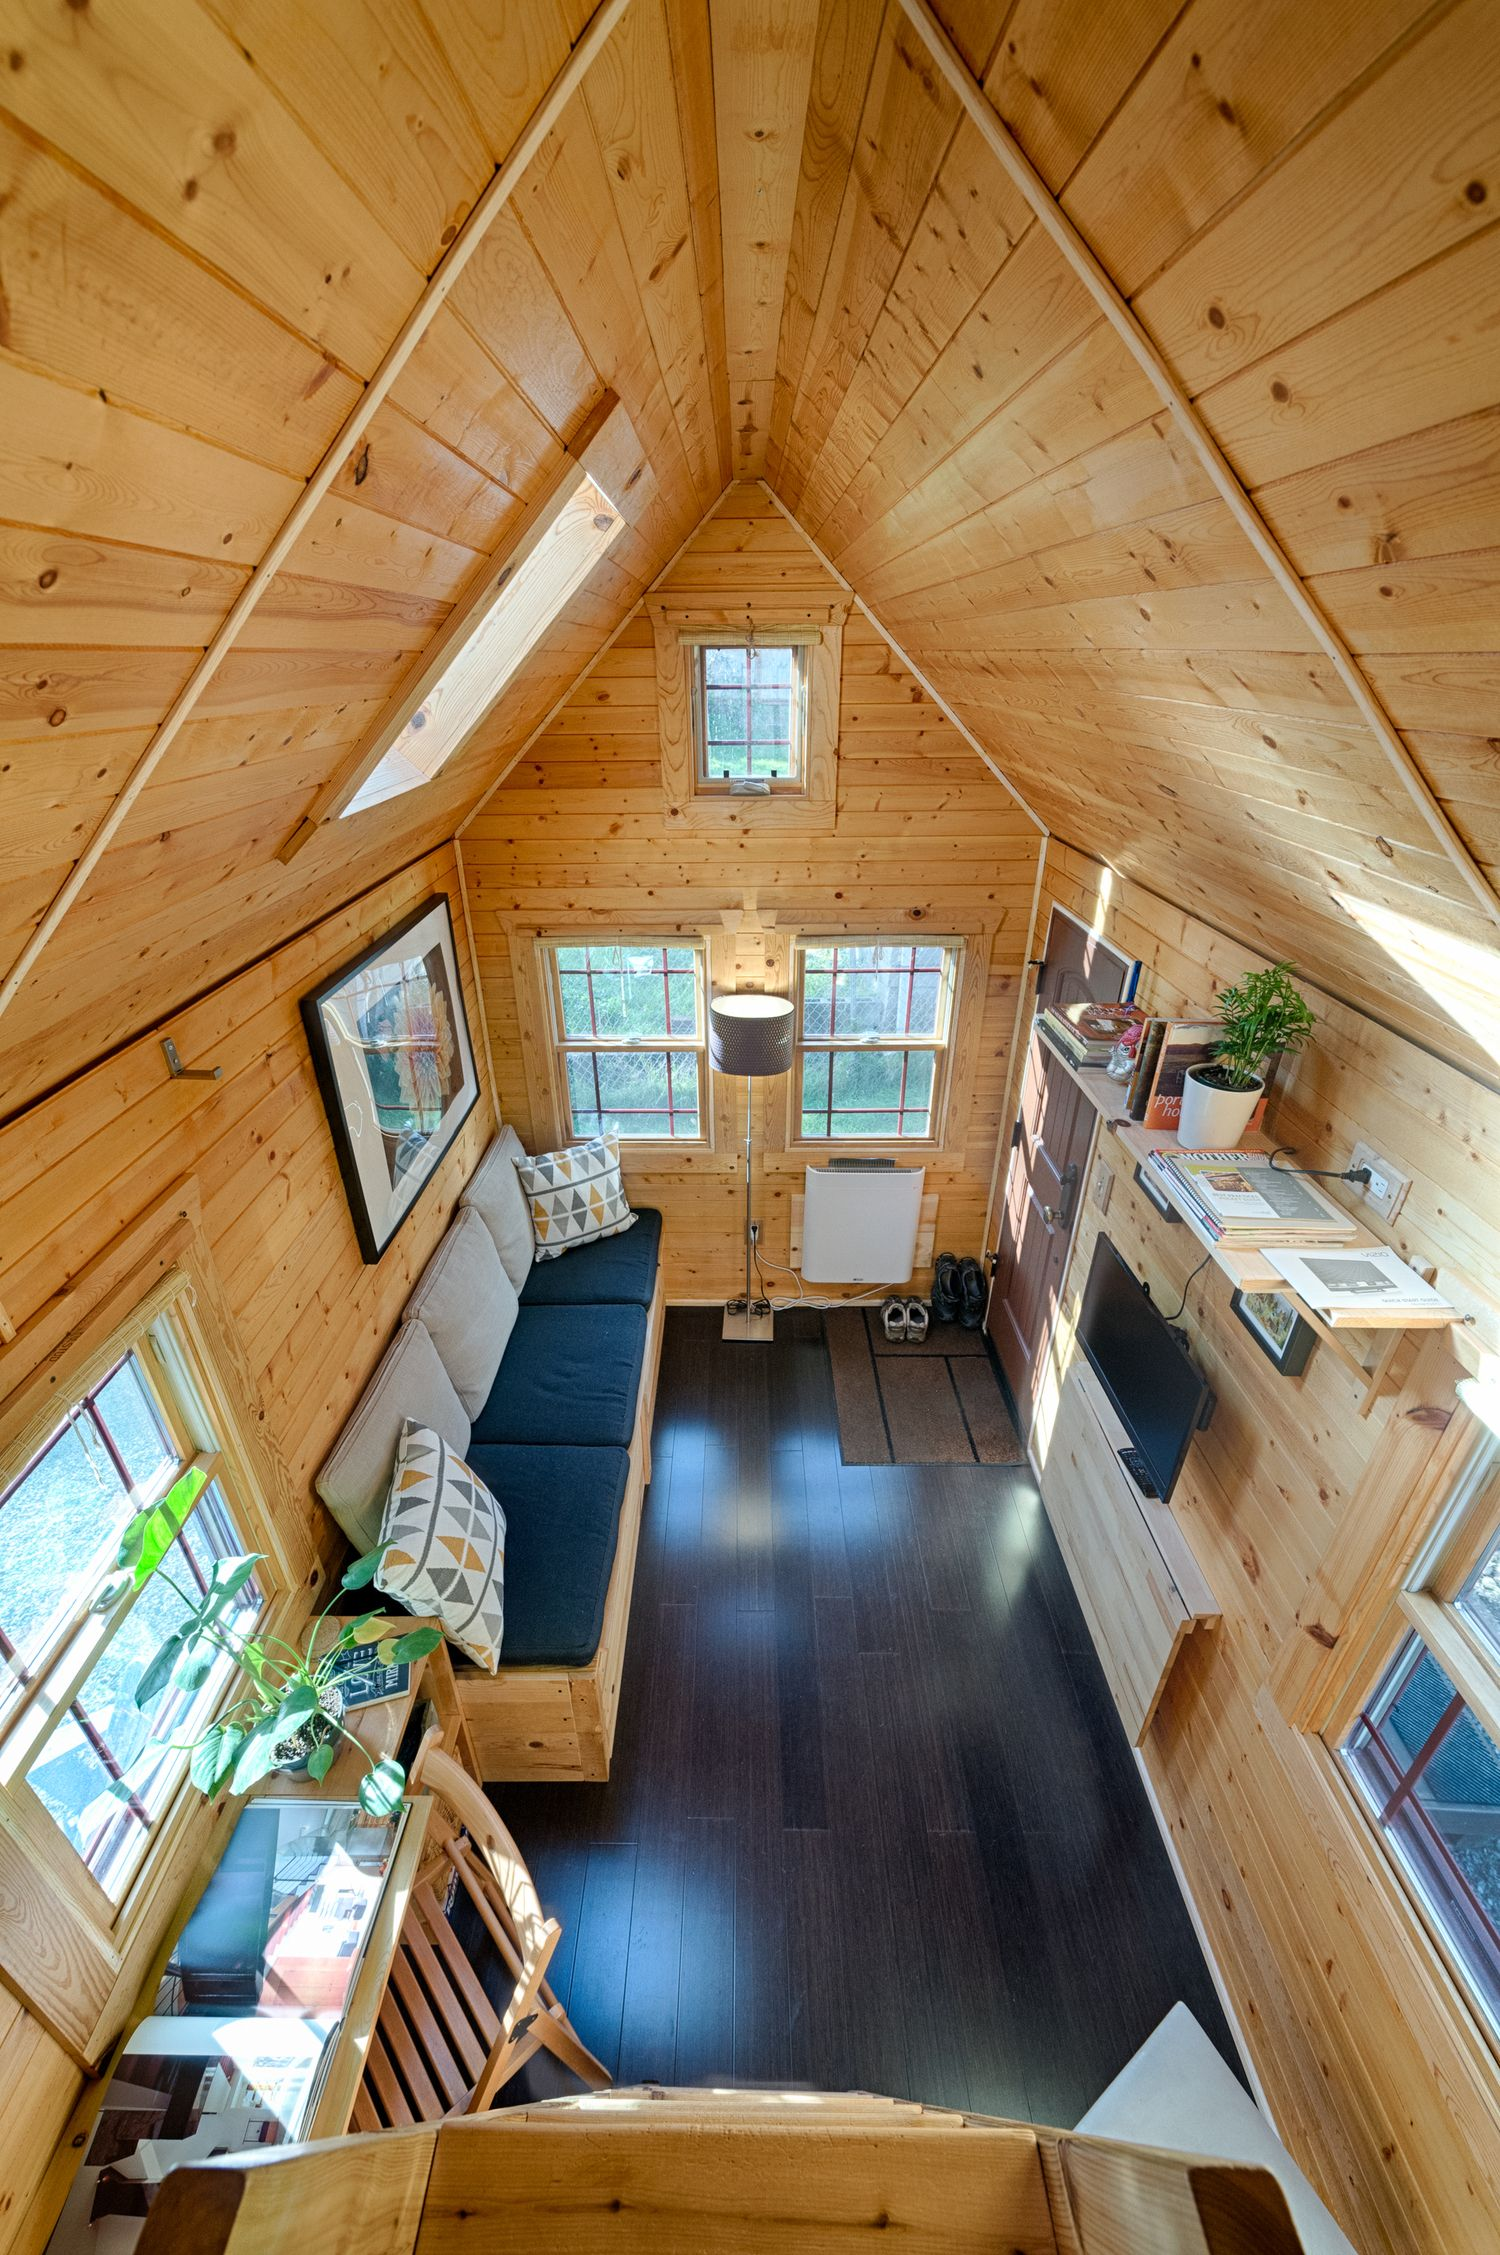 Dsc8190 Edit Hdr Jpg Tiny House Movement House In The